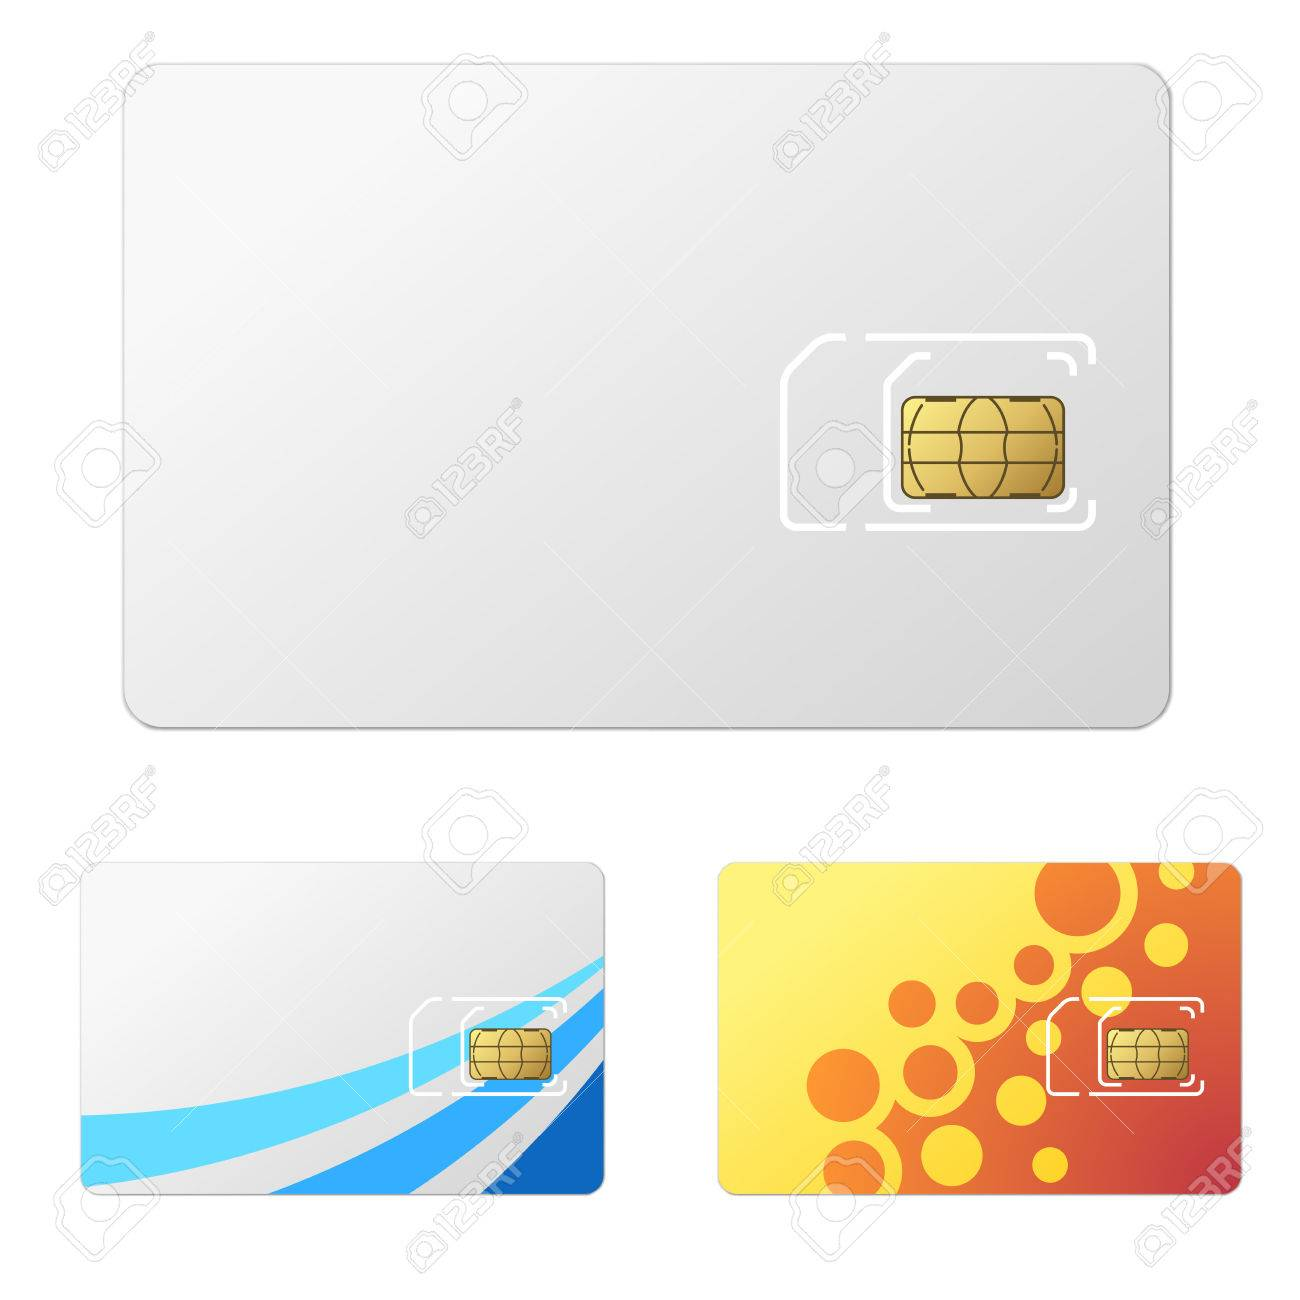 Blank White New SIM Card Template With Simple Design Examples - Sim card template